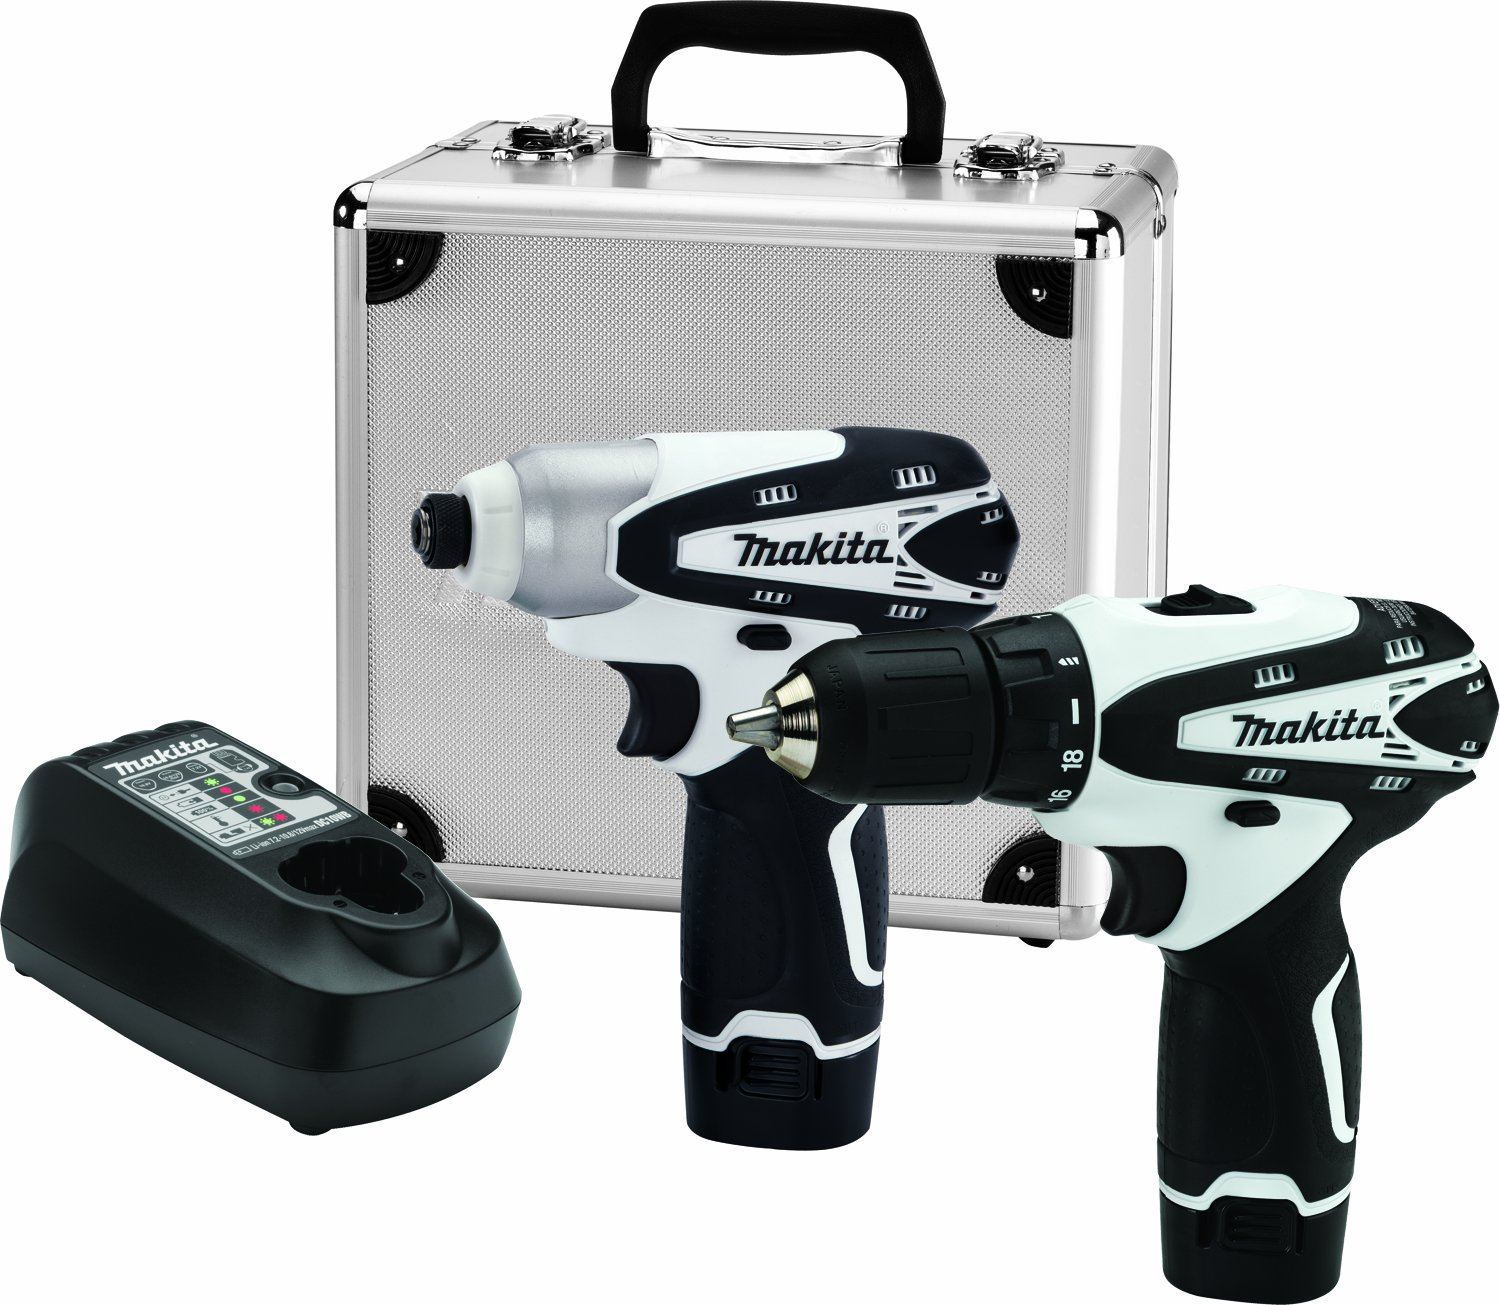 Makita LCT209W 12V max Lithium-Ion Cordless 2-Piece Combo Kit $99.00